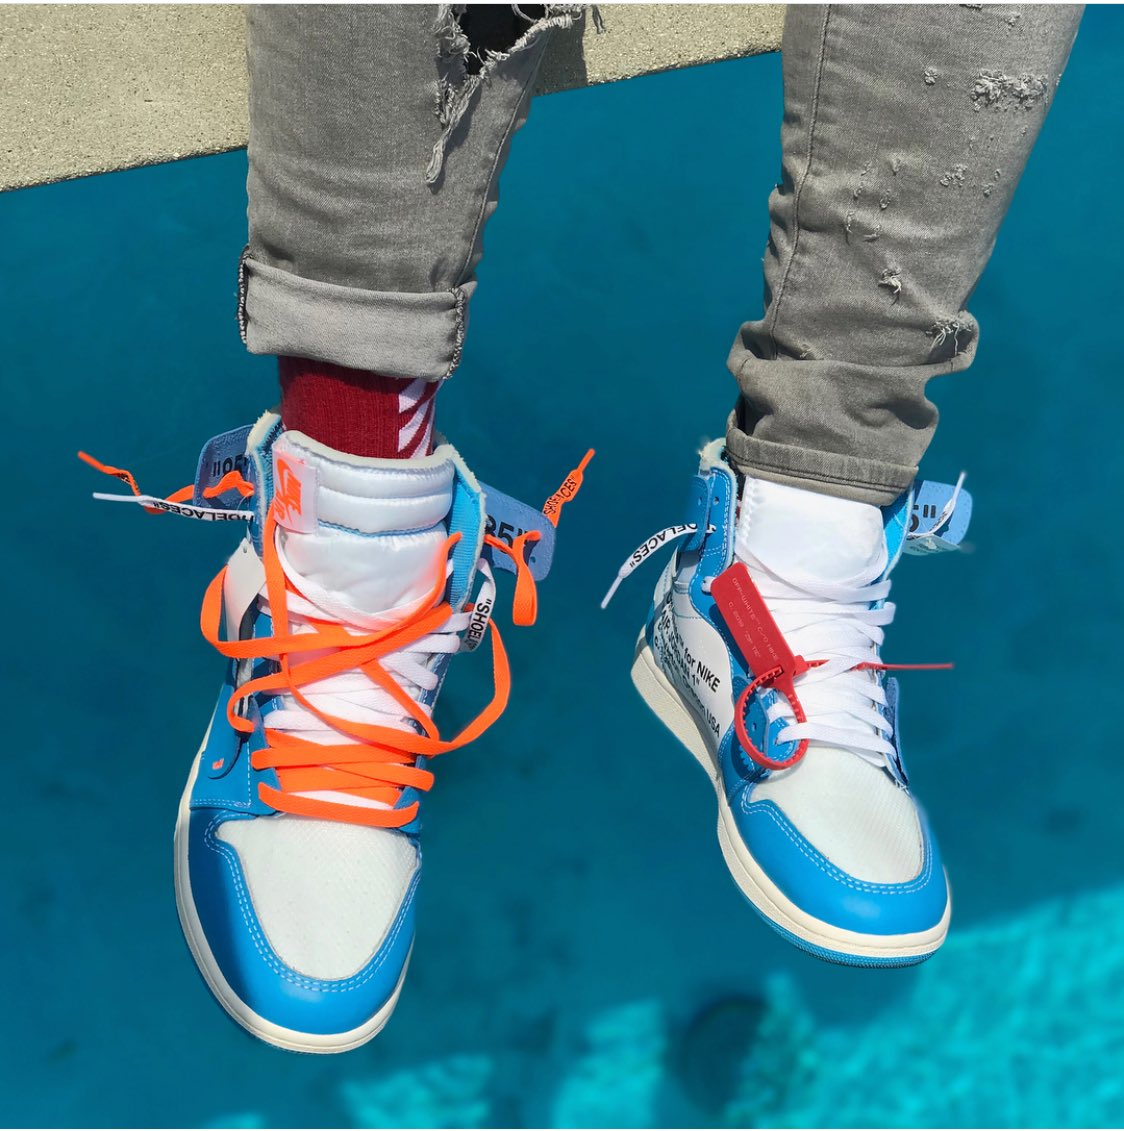 c47594a1ba6 Off-White UNC 1s with the Orange laces 🔥 🔥 🔥 🤤 🤤 pic.twitter.com/WvNlqSxWYh.  4:21 PM - 19 May 2018